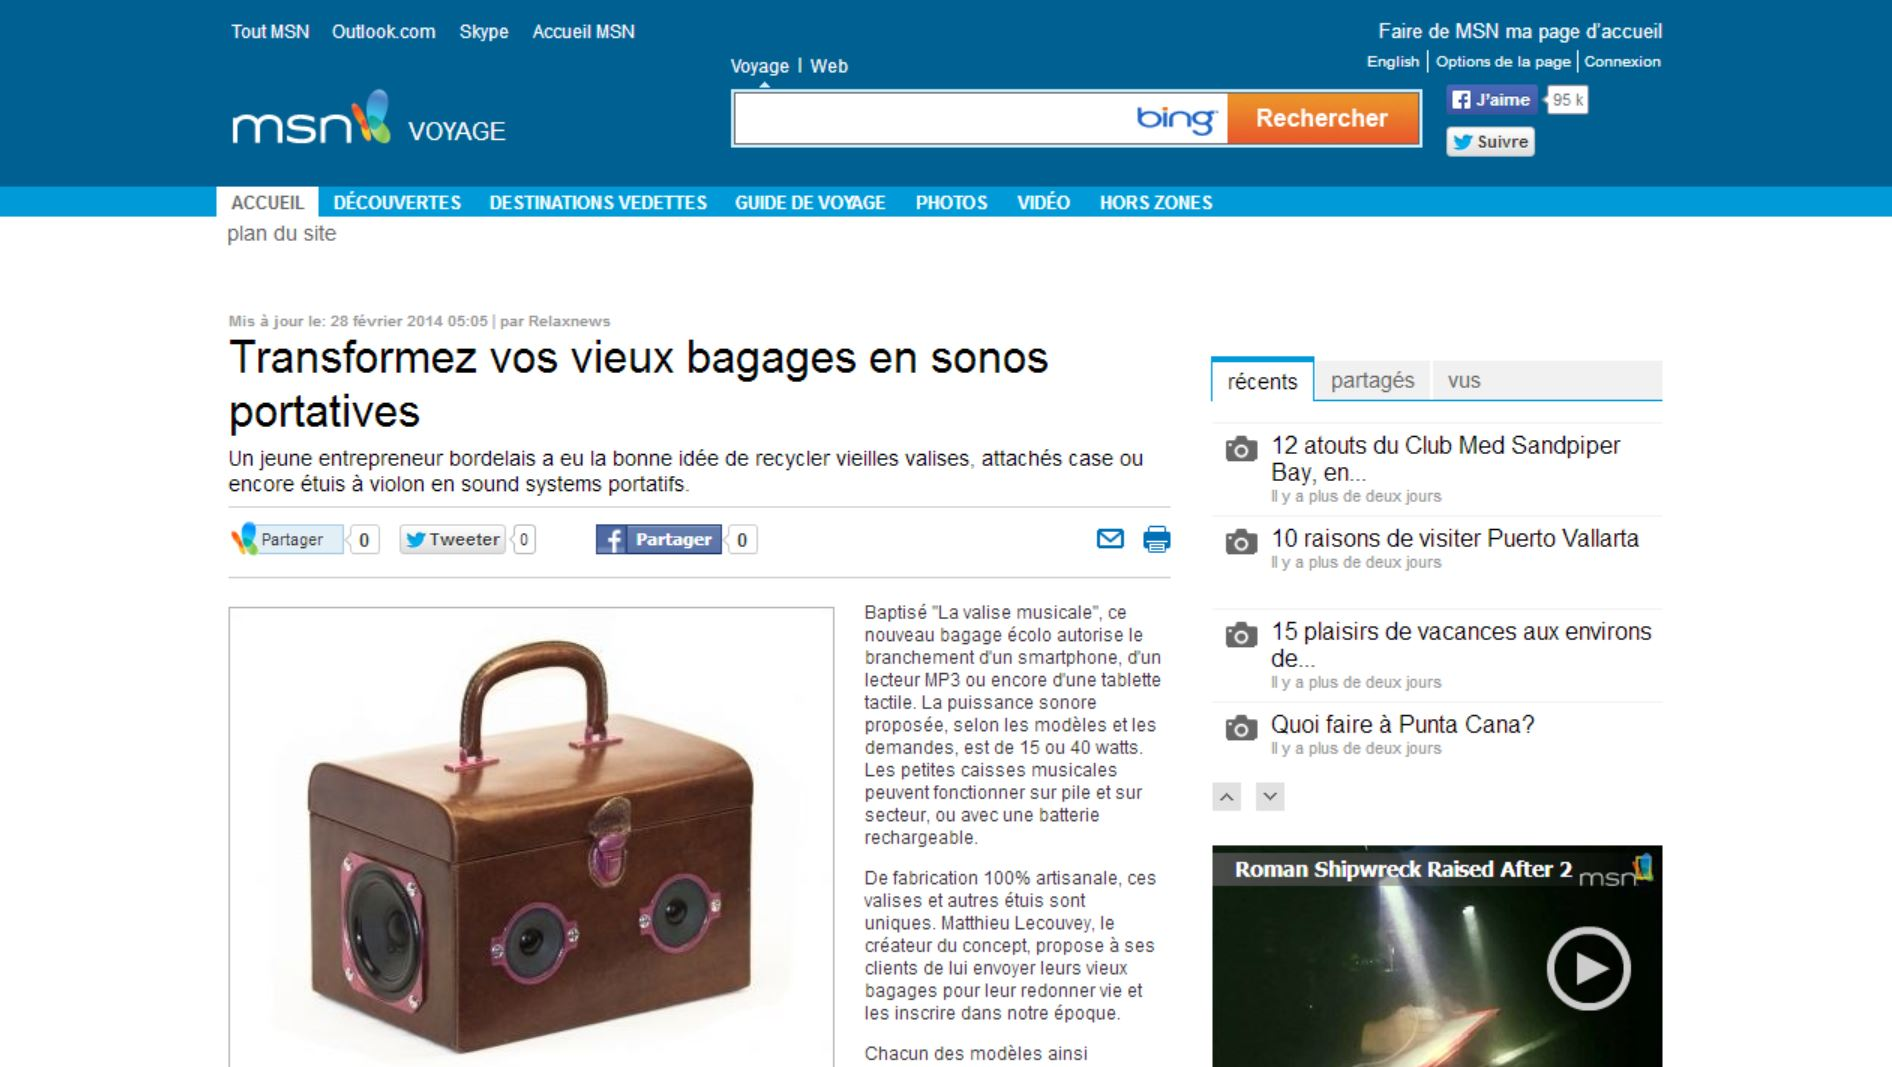 valise-musicale_article_msnvoyage